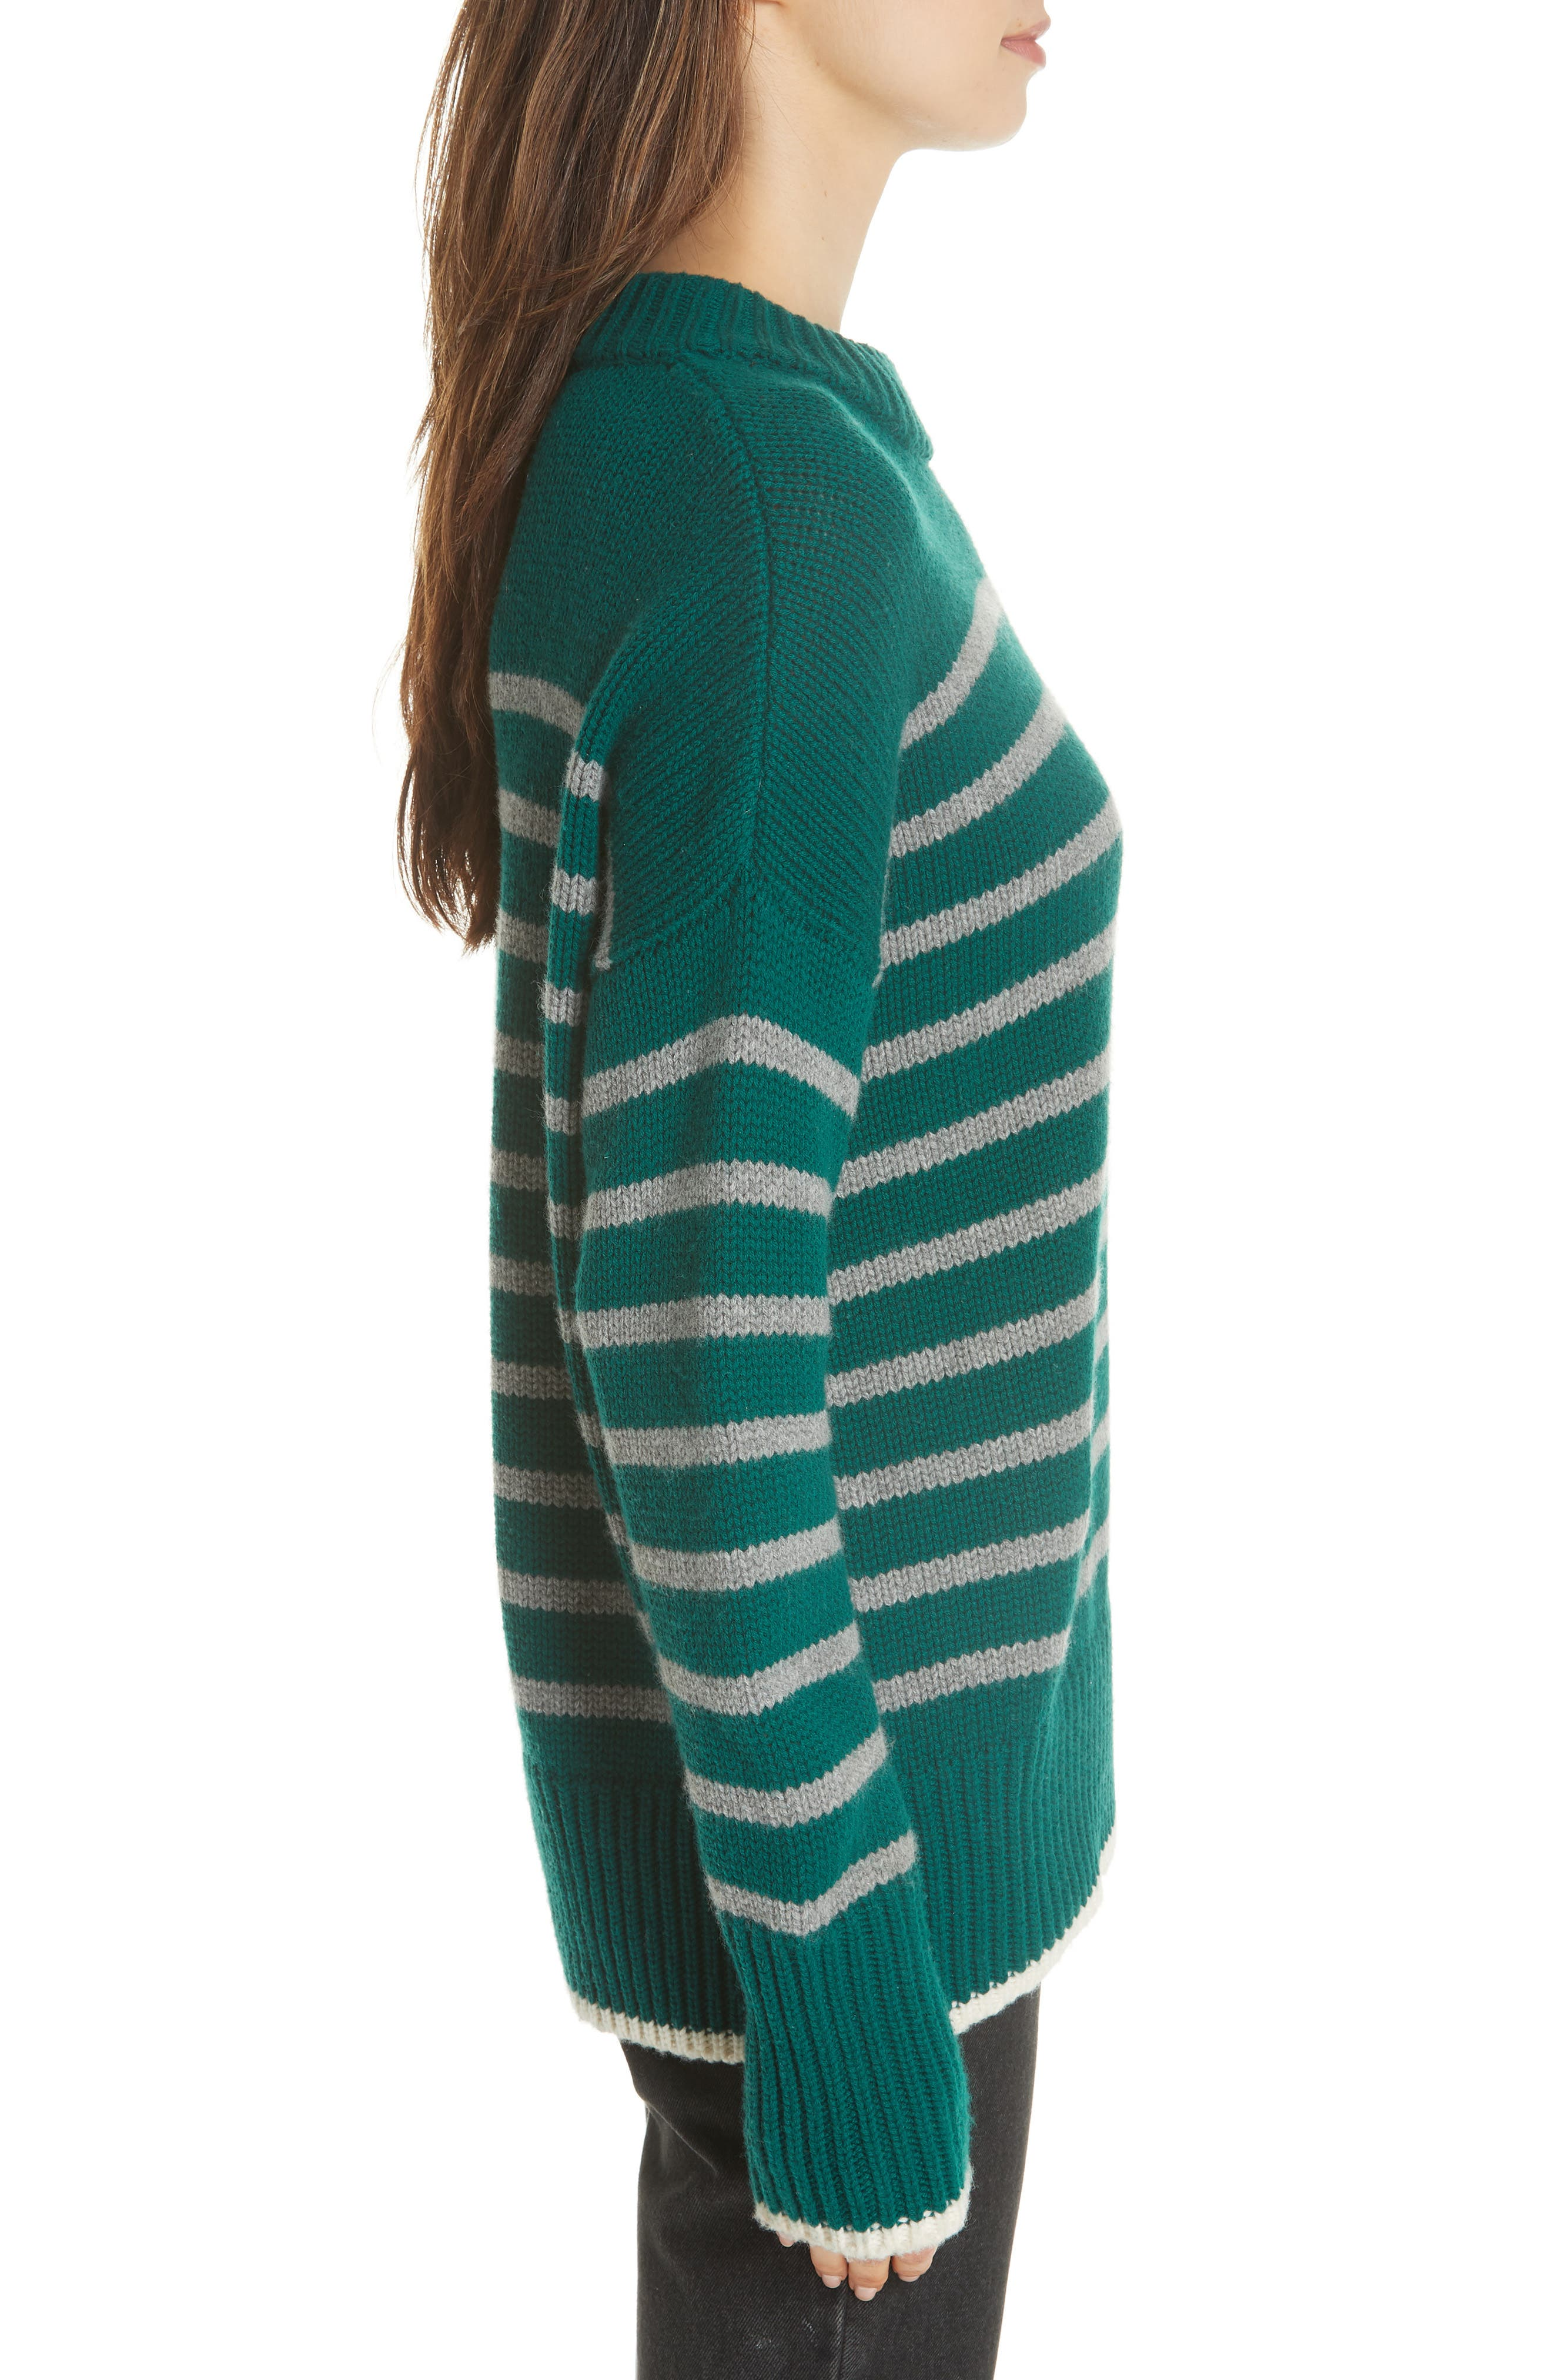 Marin Wool & Cashmere Sweater,                             Alternate thumbnail 3, color,                             FOREST GREEN/ GREY MARLE